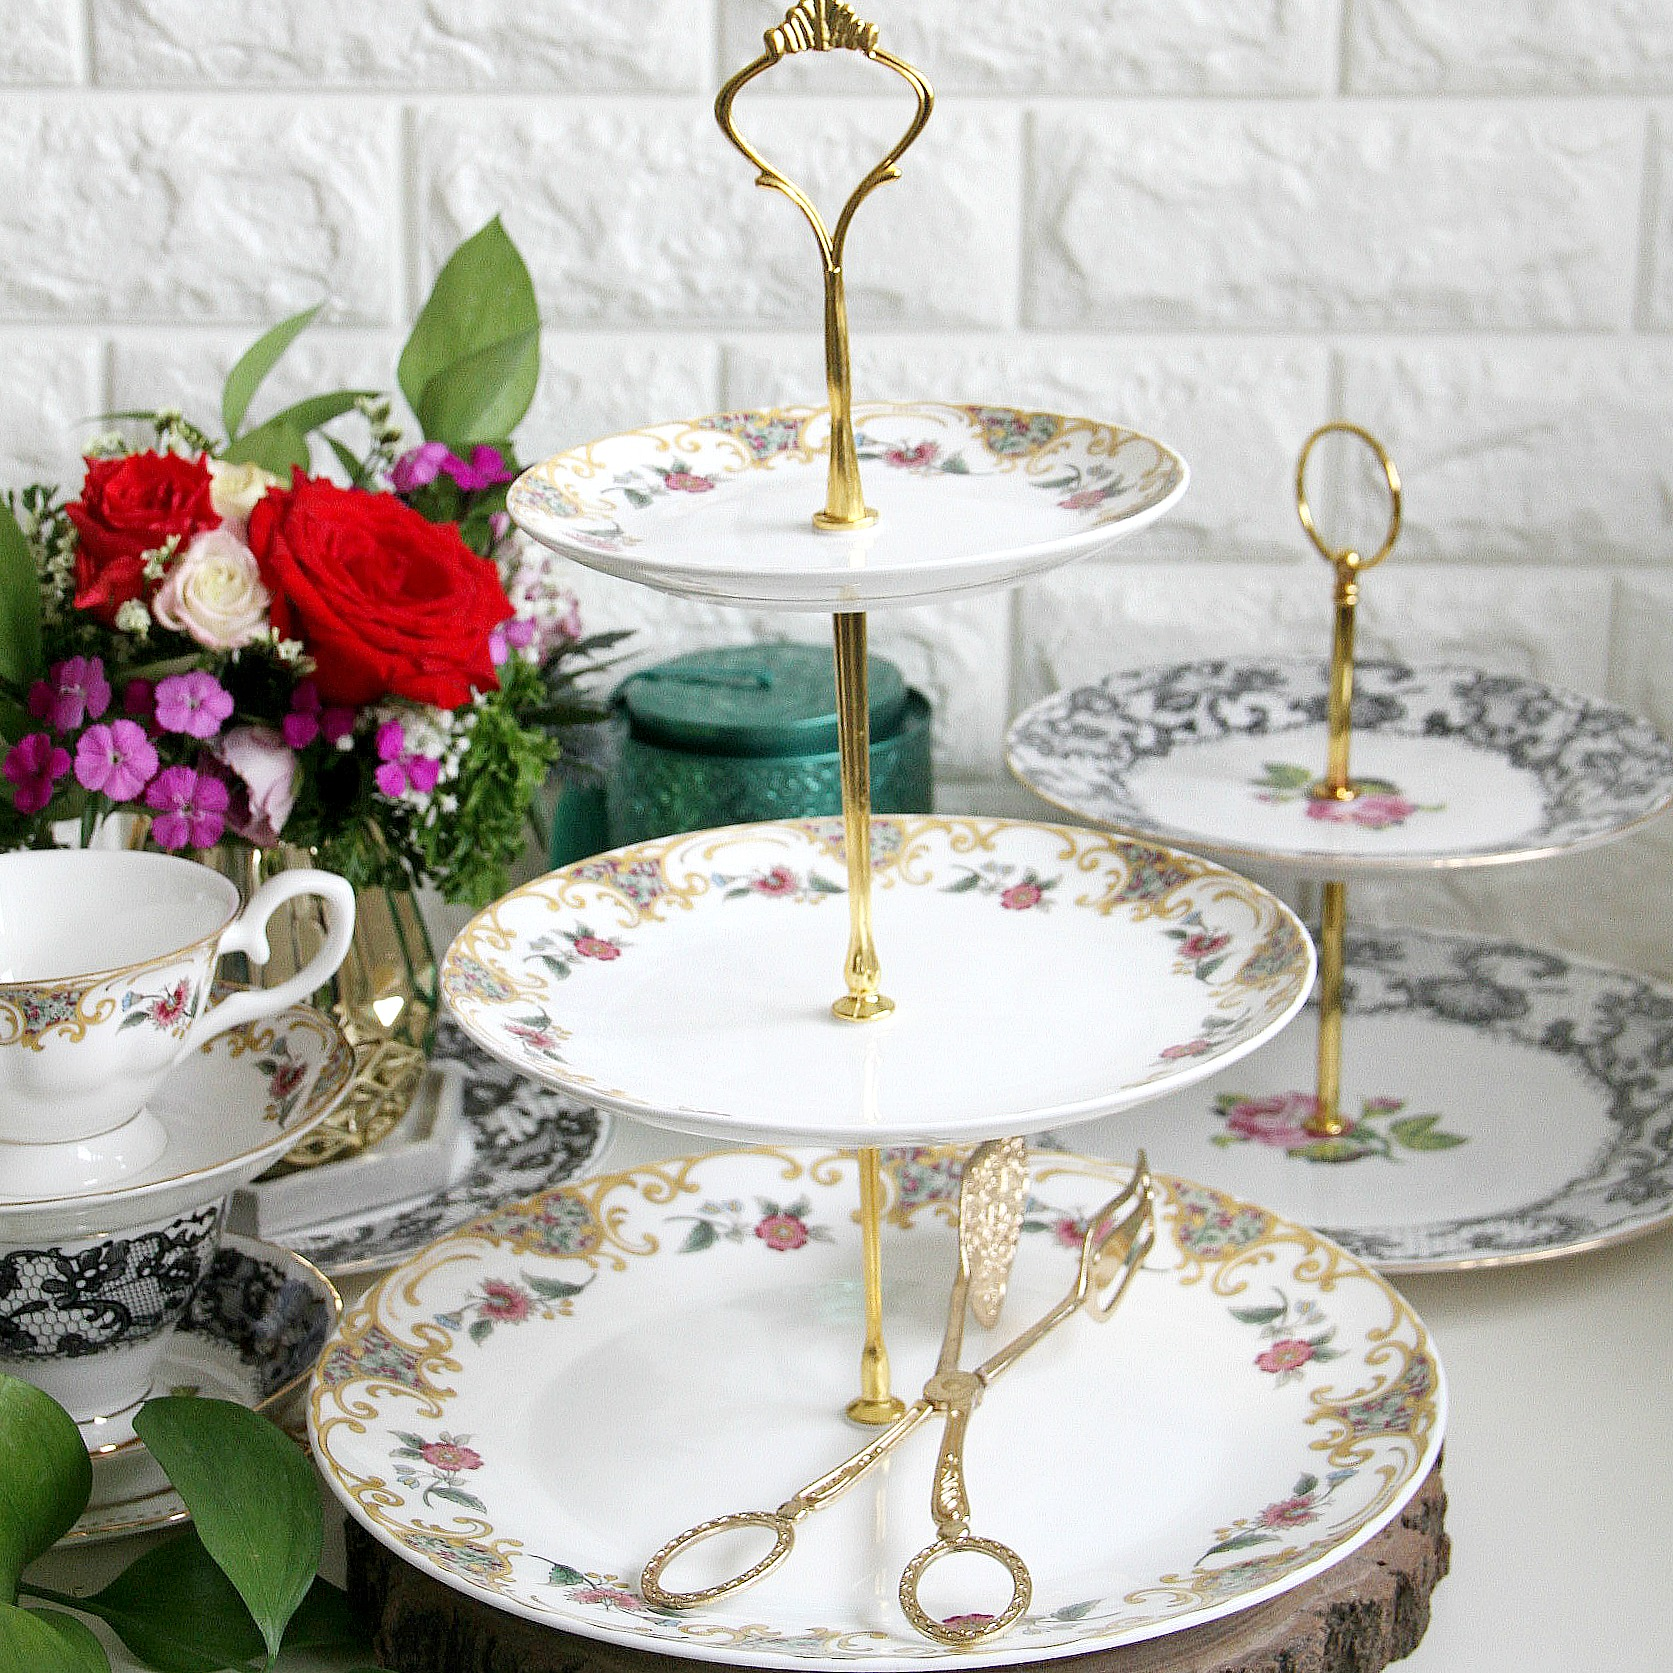 3 Tier Continental Oberon Cake Stand